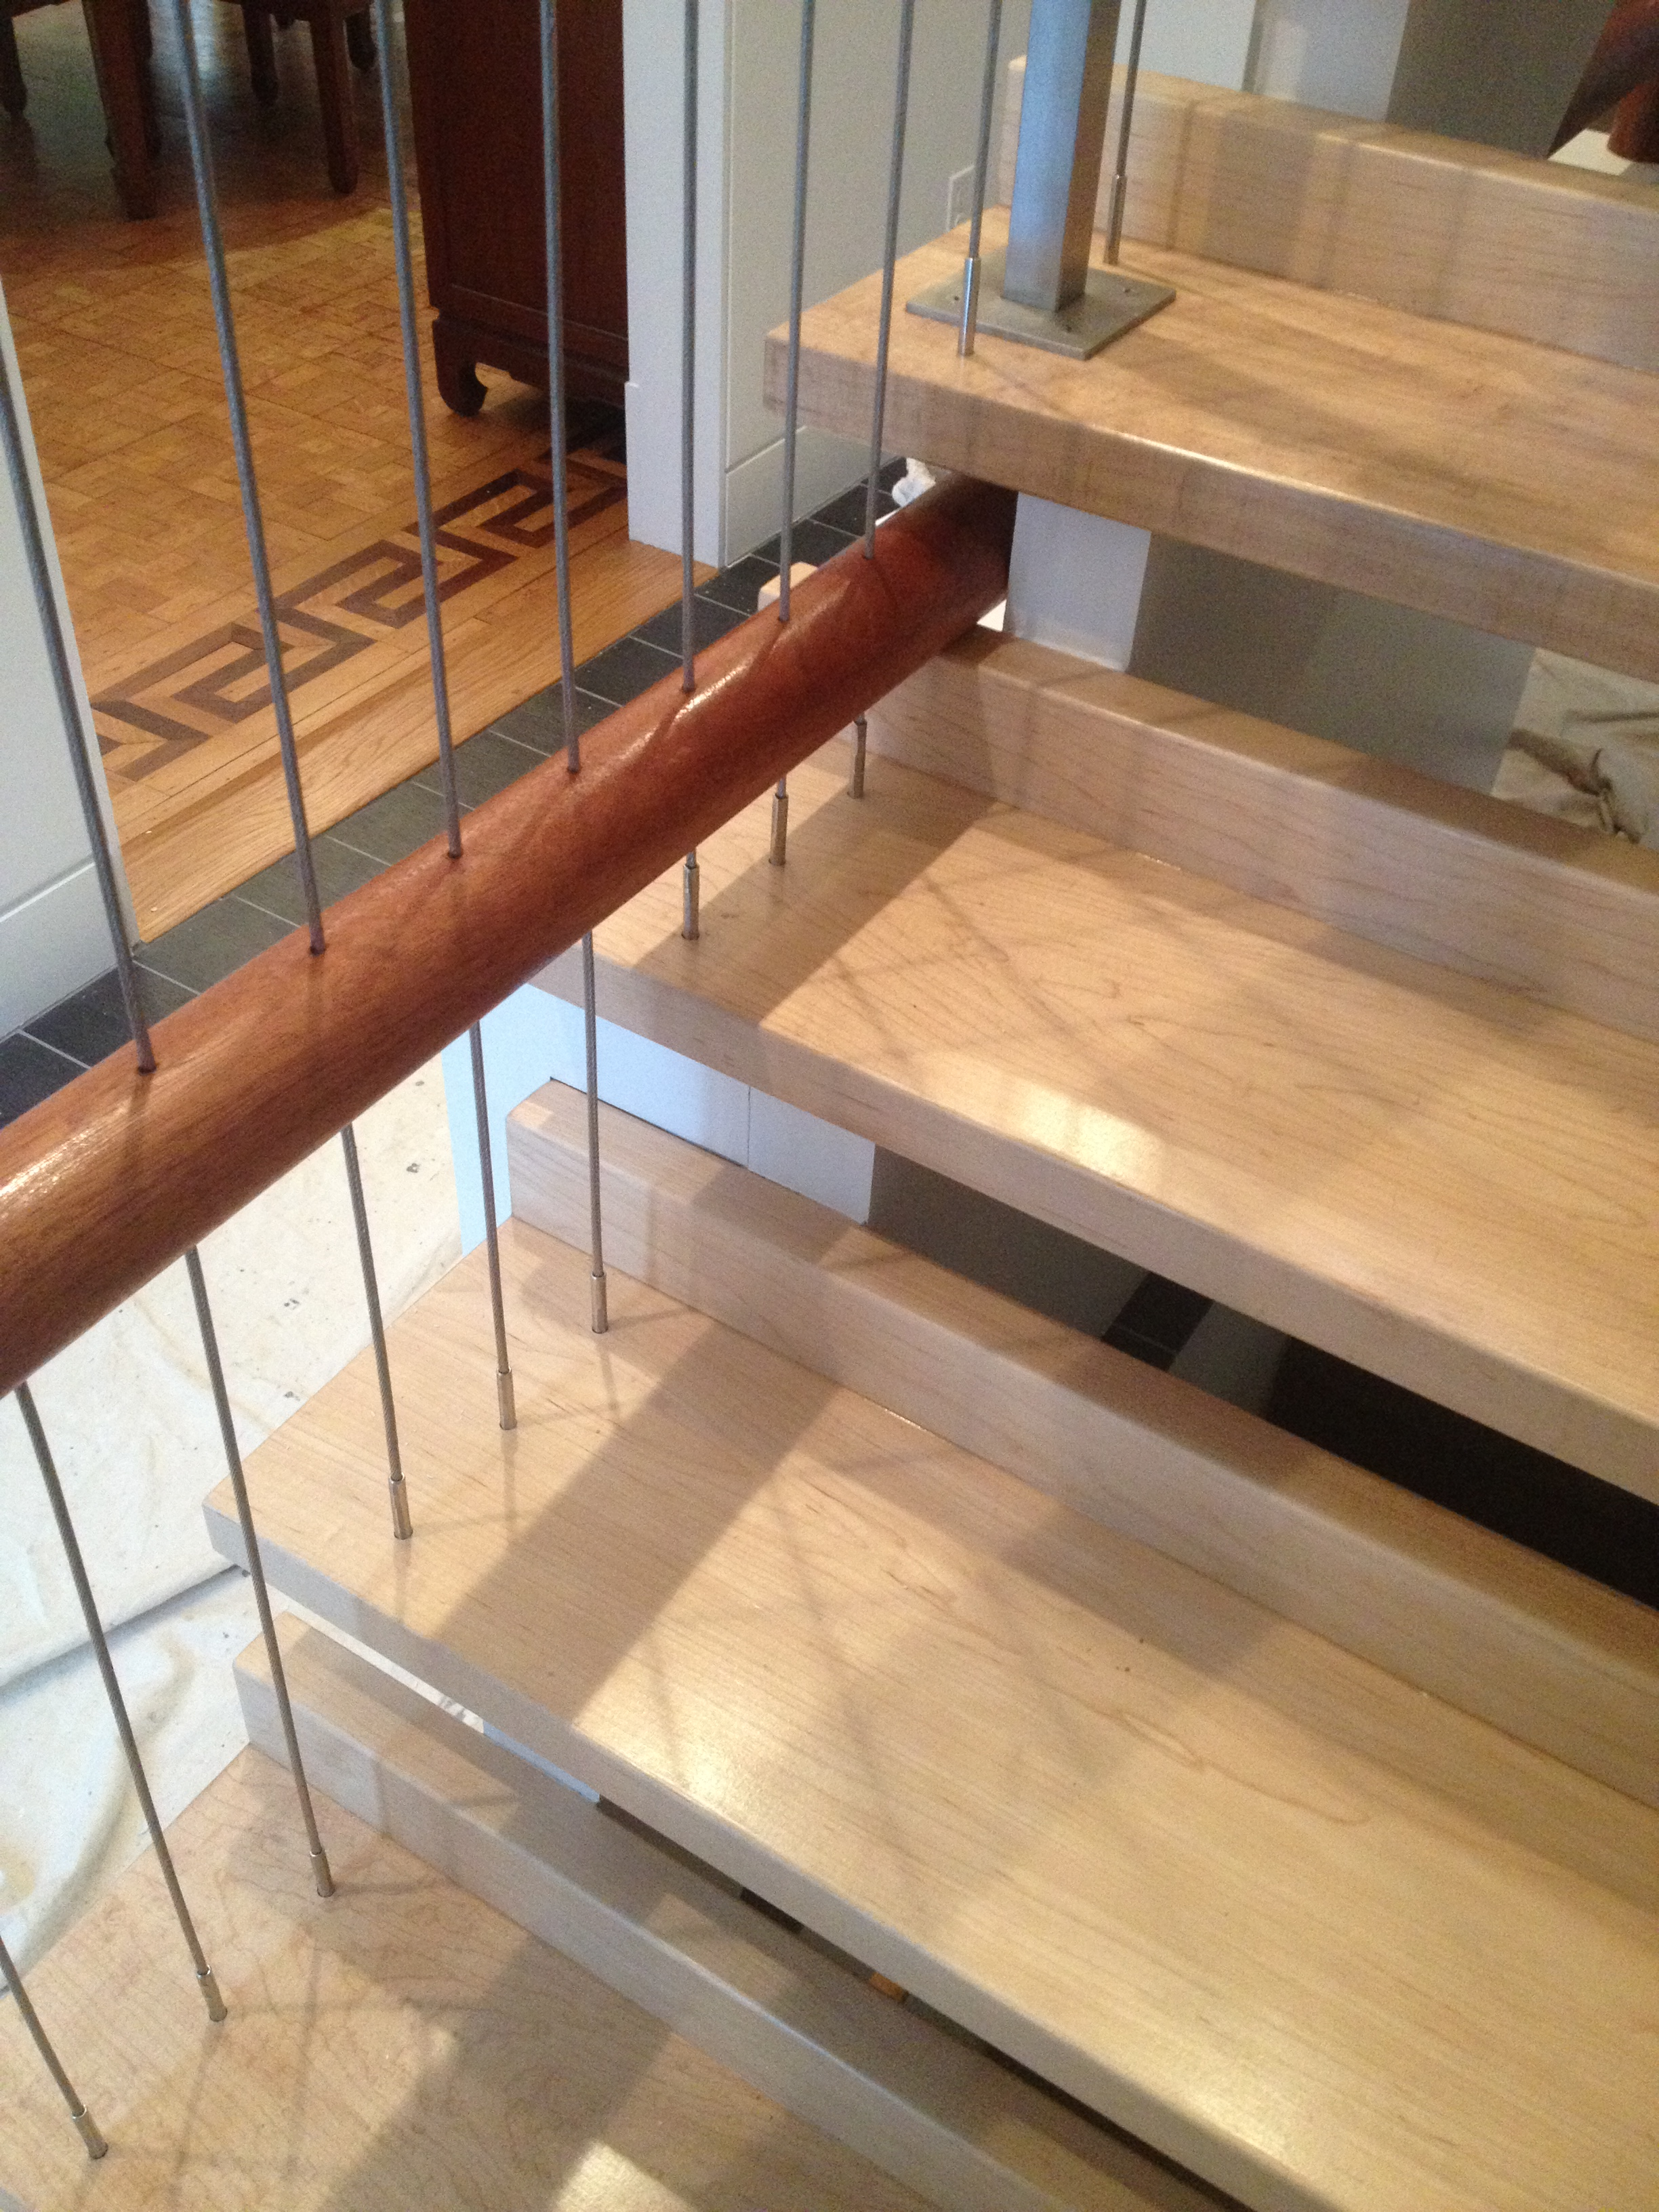 staircase spindles under high stairs ideas breathtaking images milk stair banister contemporary llc baby banisters design modern balusters space about glamorous nursery interior company kits rail spindle and ravishing railing by gallery mounted definition wall build handrail railings uk